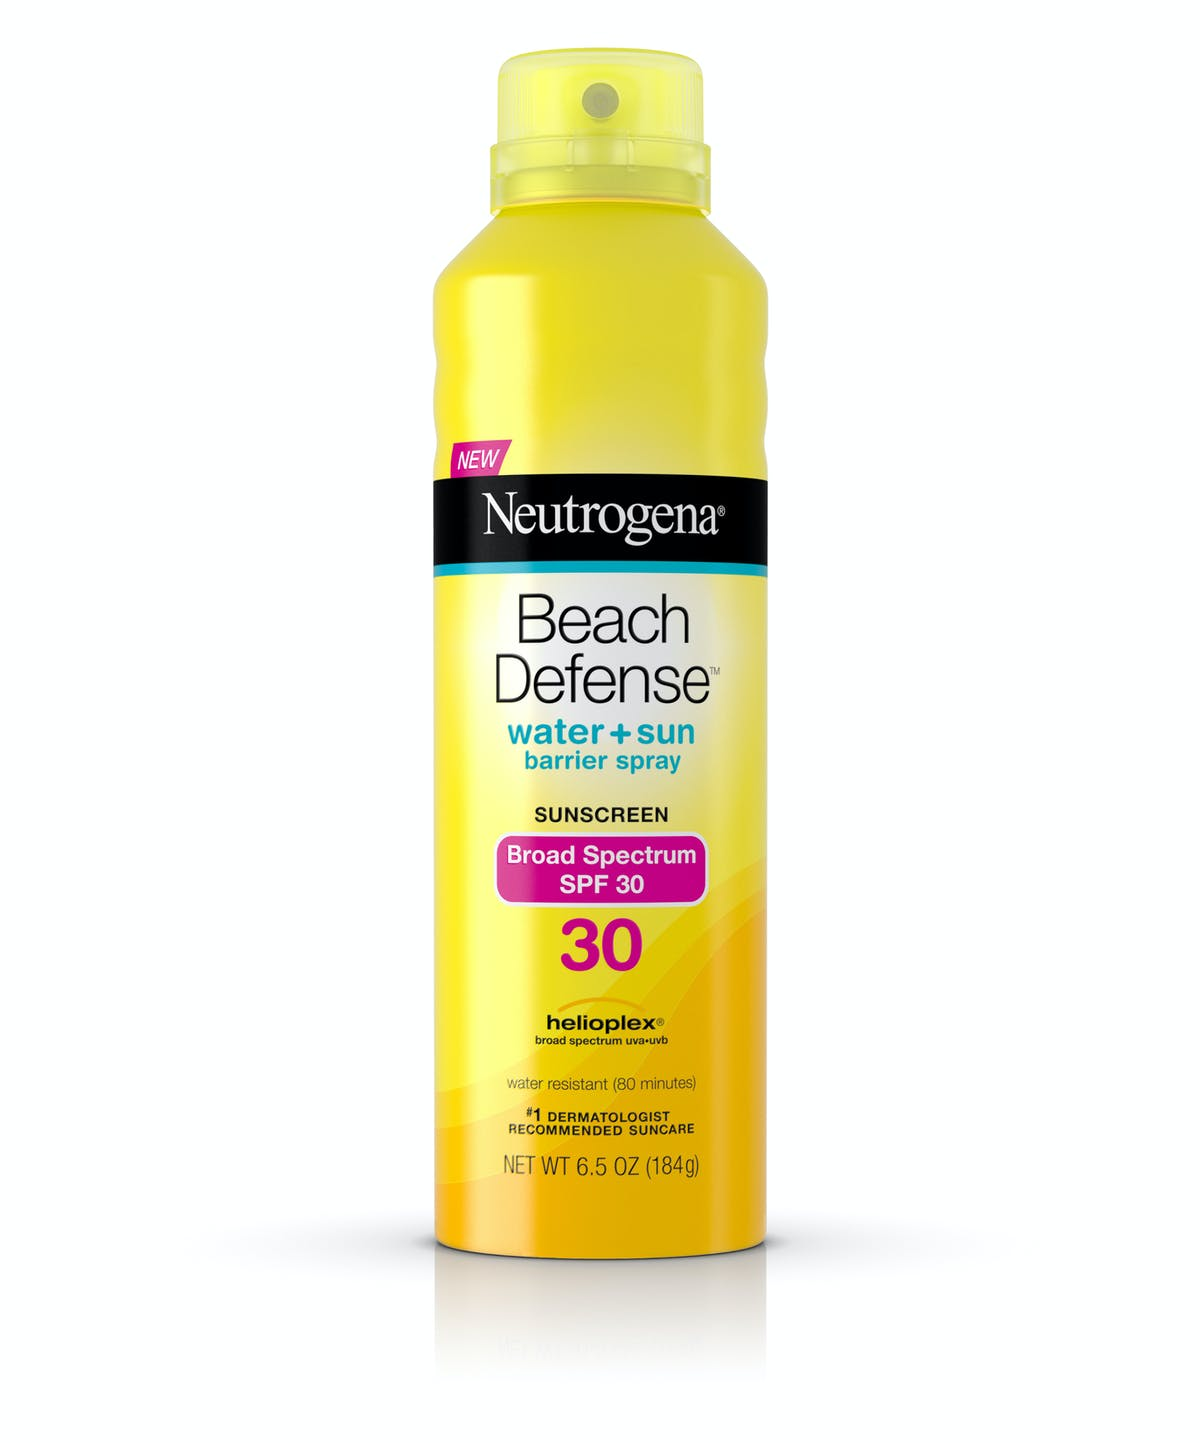 Beach Defense Reg Water Sun Protection Sunscreen Spray Broad Spectrum